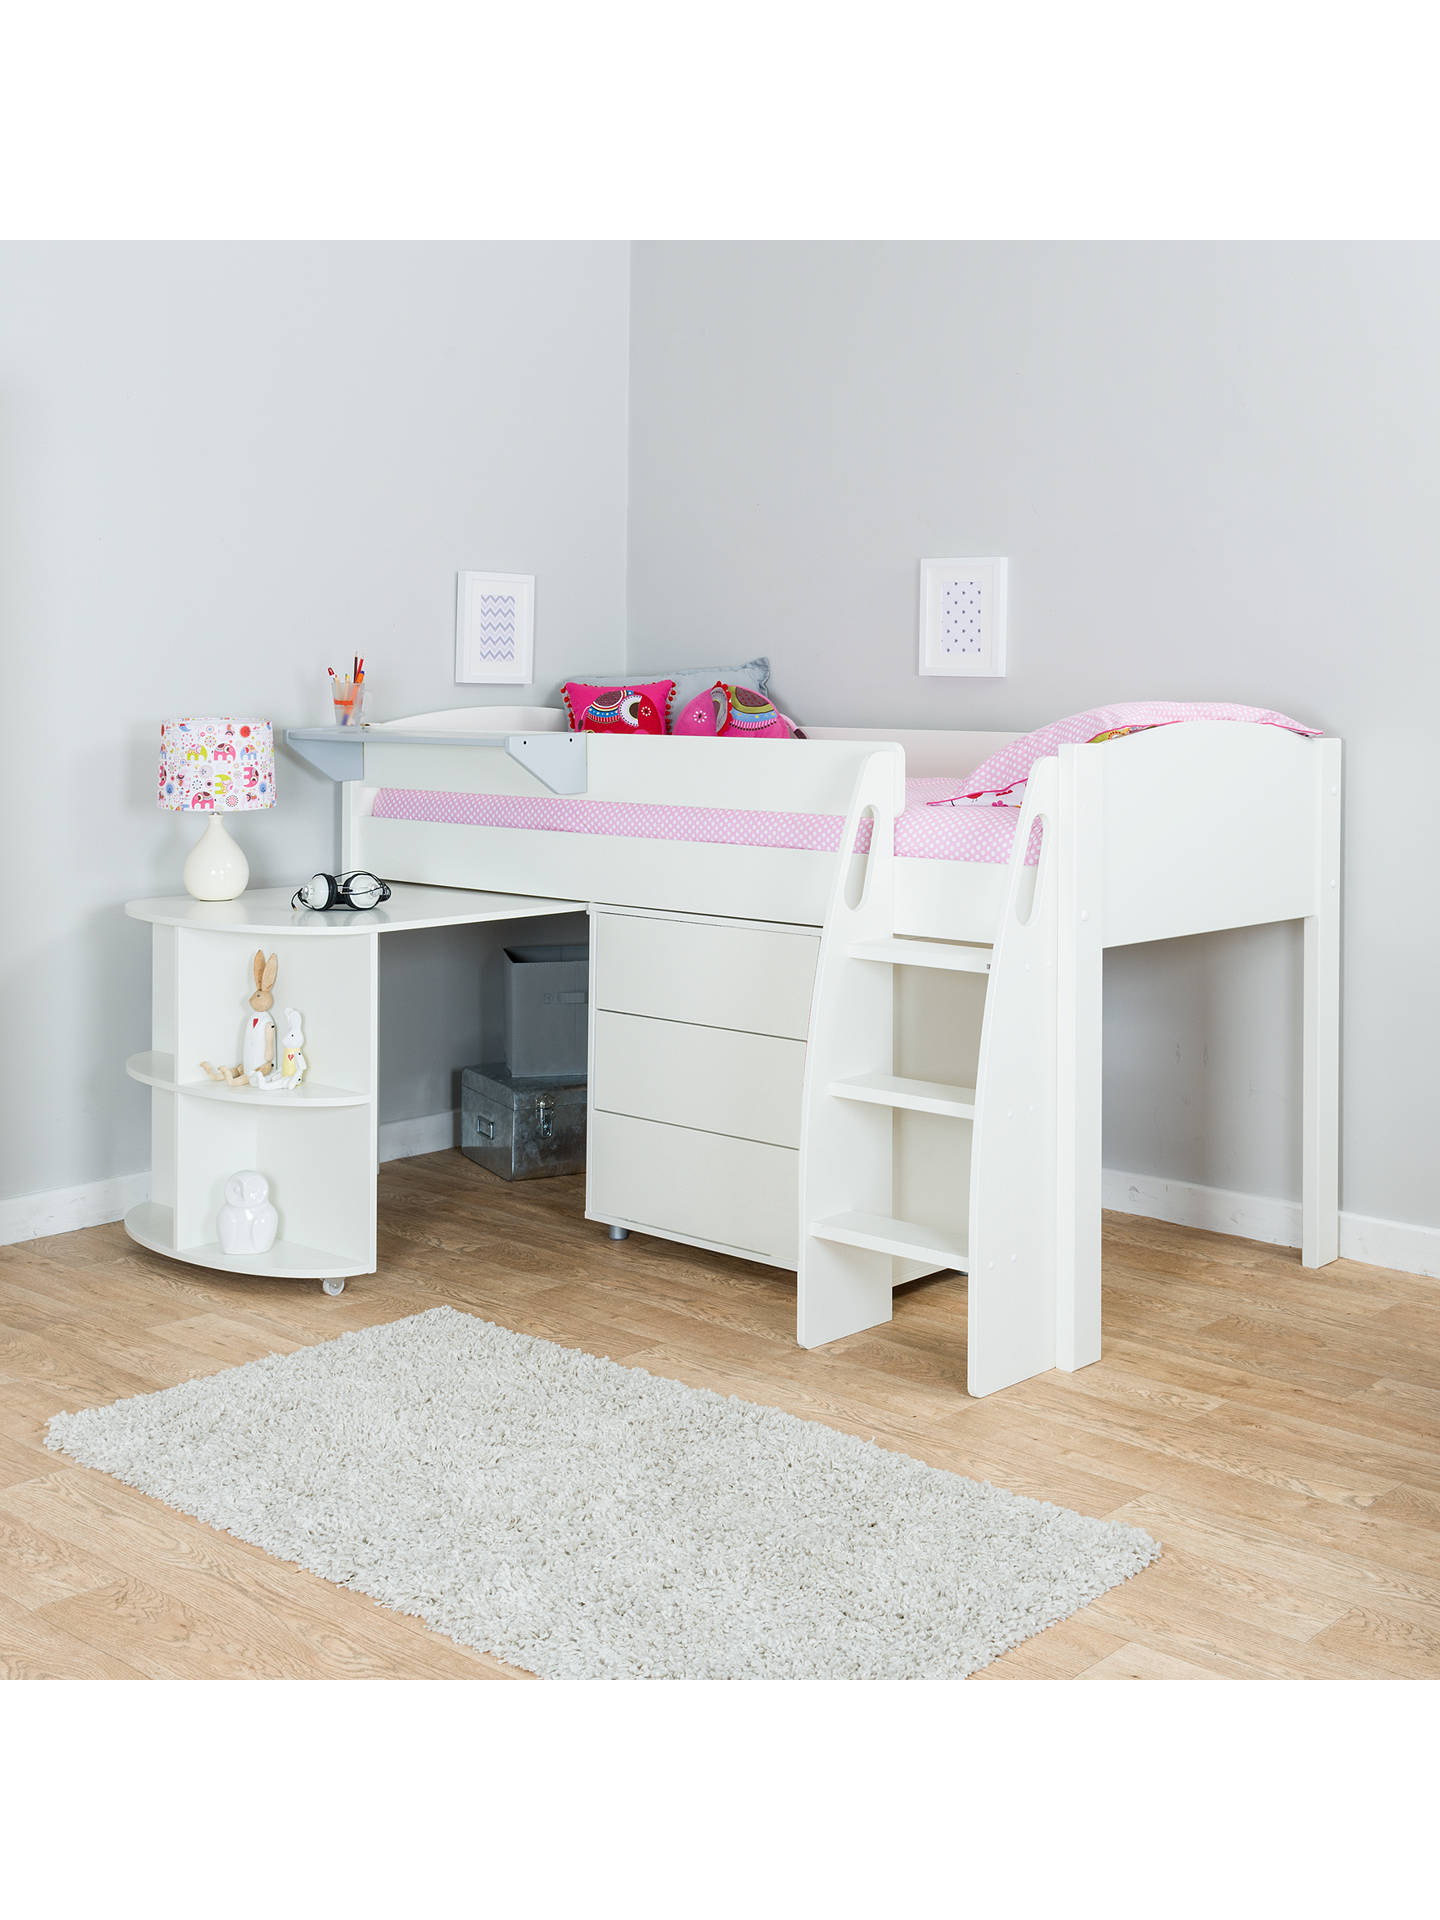 BuyStompa Uno S Plus Mid-Sleeper with Pull-Out Desk and 3 Drawer Chest, White Online at johnlewis.com